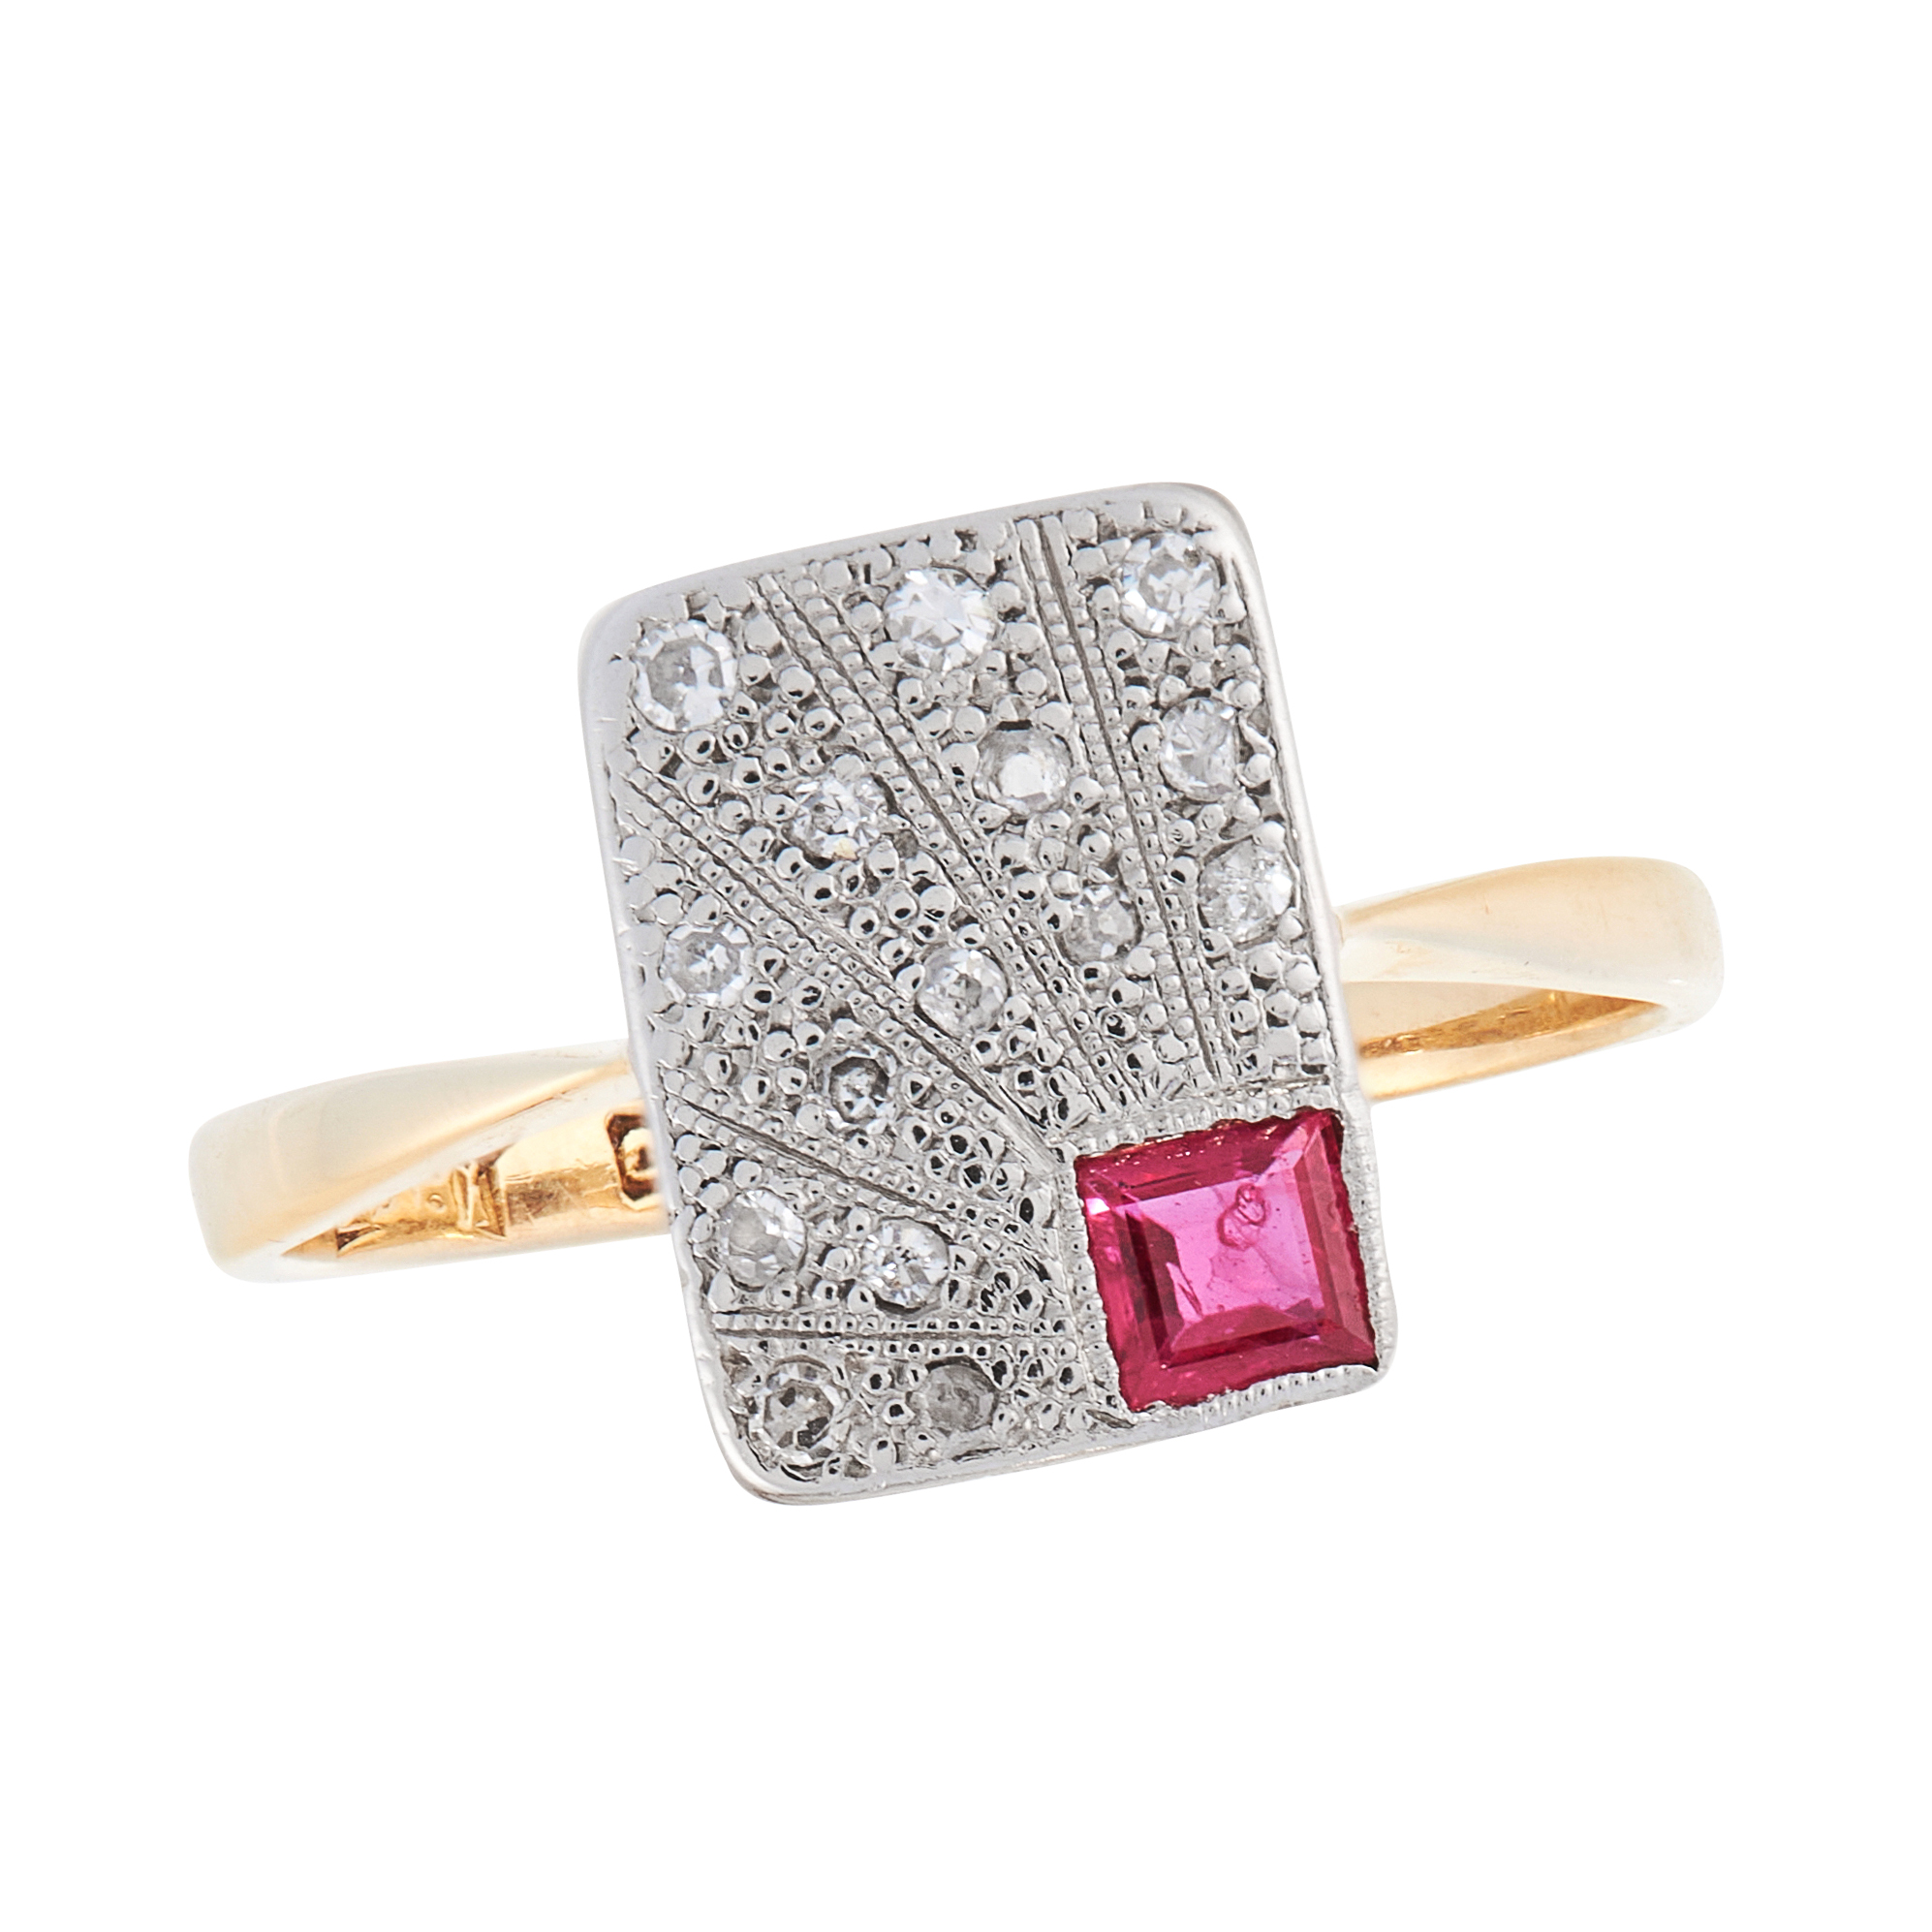 AN ART DECO RUBY AND DIAMOND DRESS RING, EARLY 20TH CENTURY in 18ct yellow gold and platinum, the